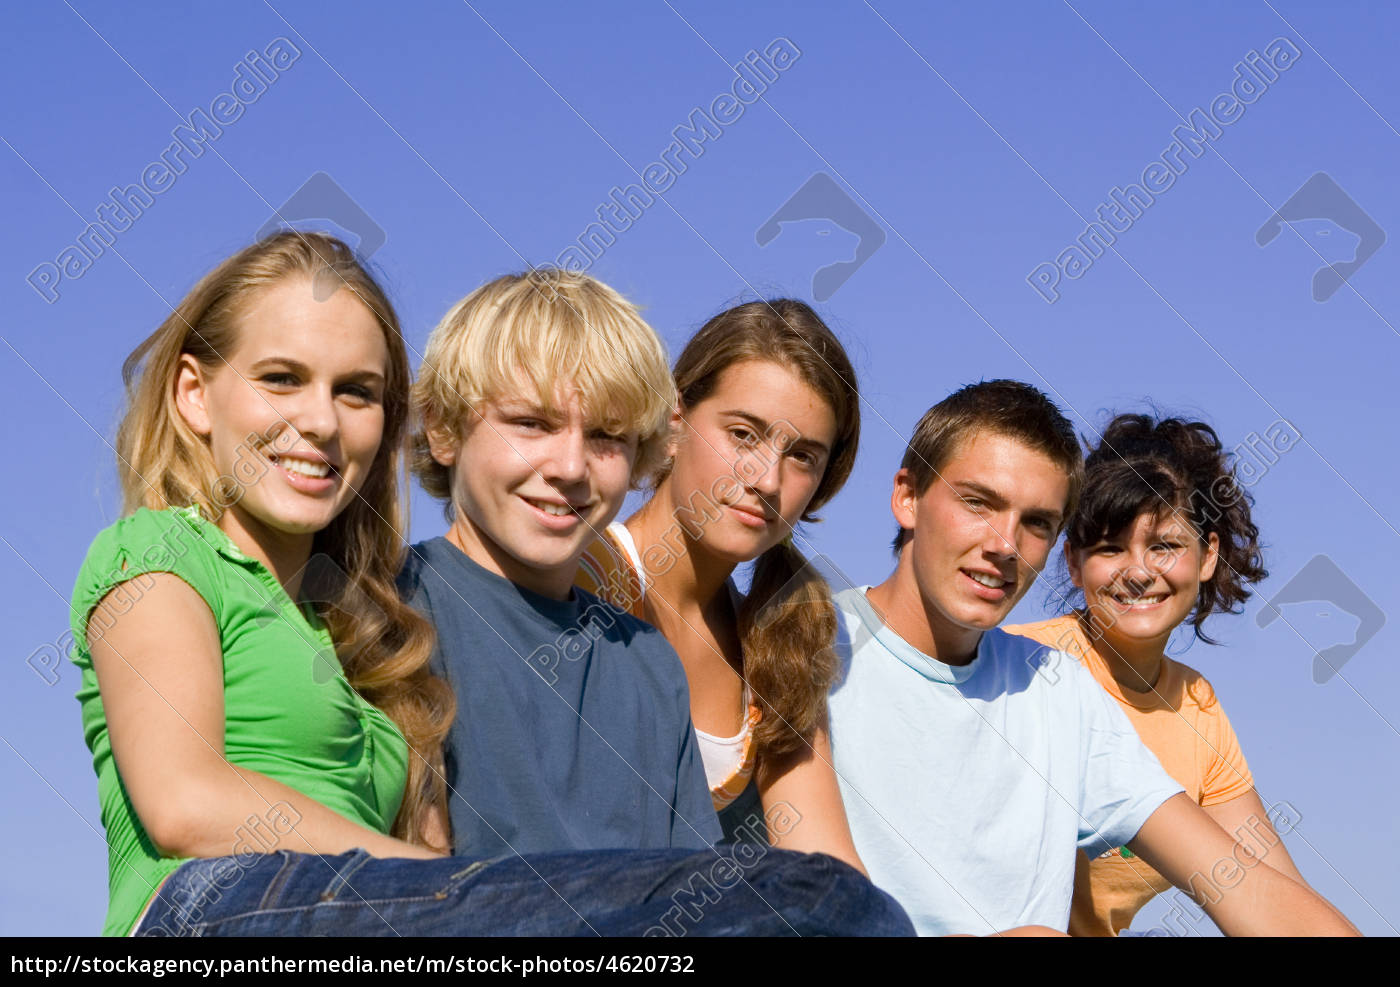 group, of, happy, smiling, , youth - 4620732